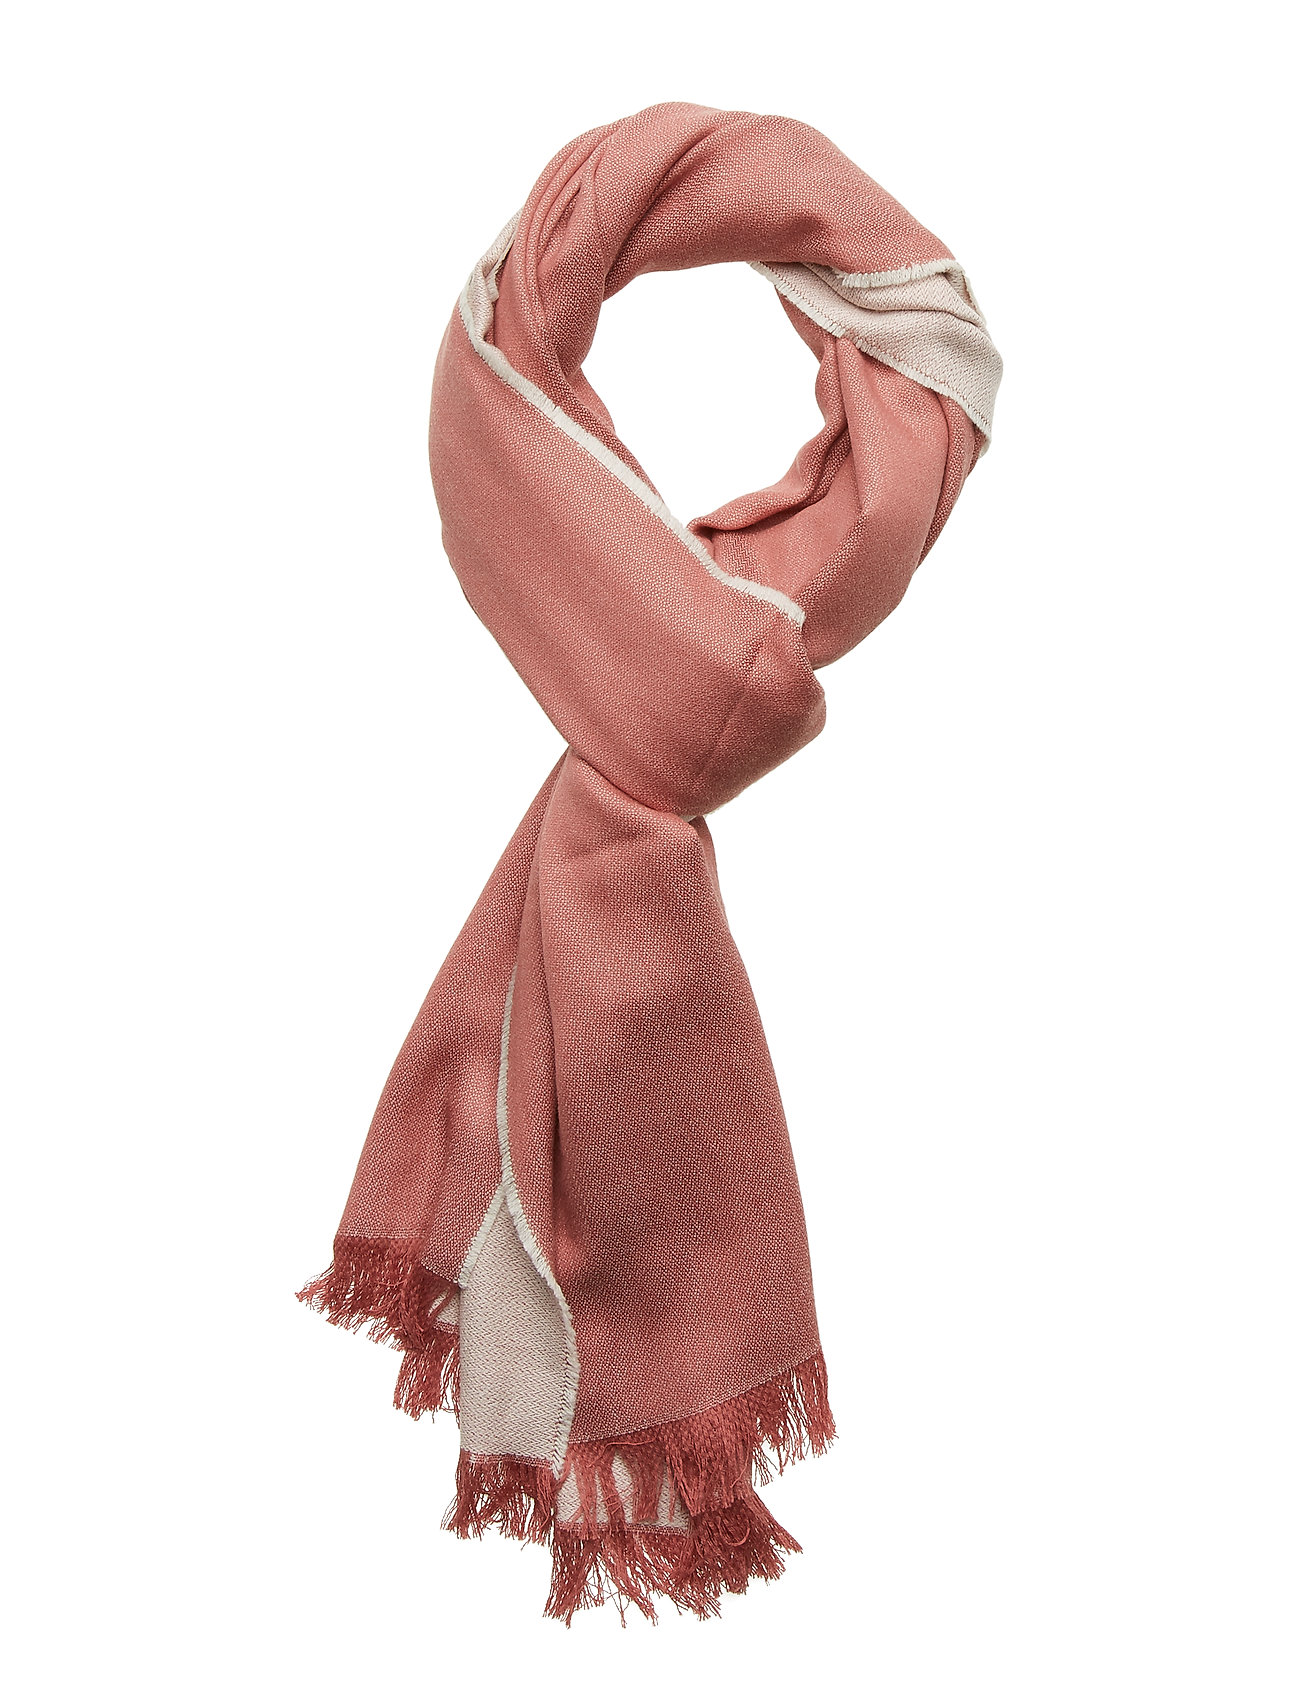 WEEKEND MAX MARA Pagano Schal Pink WEEKEND MAX MARA